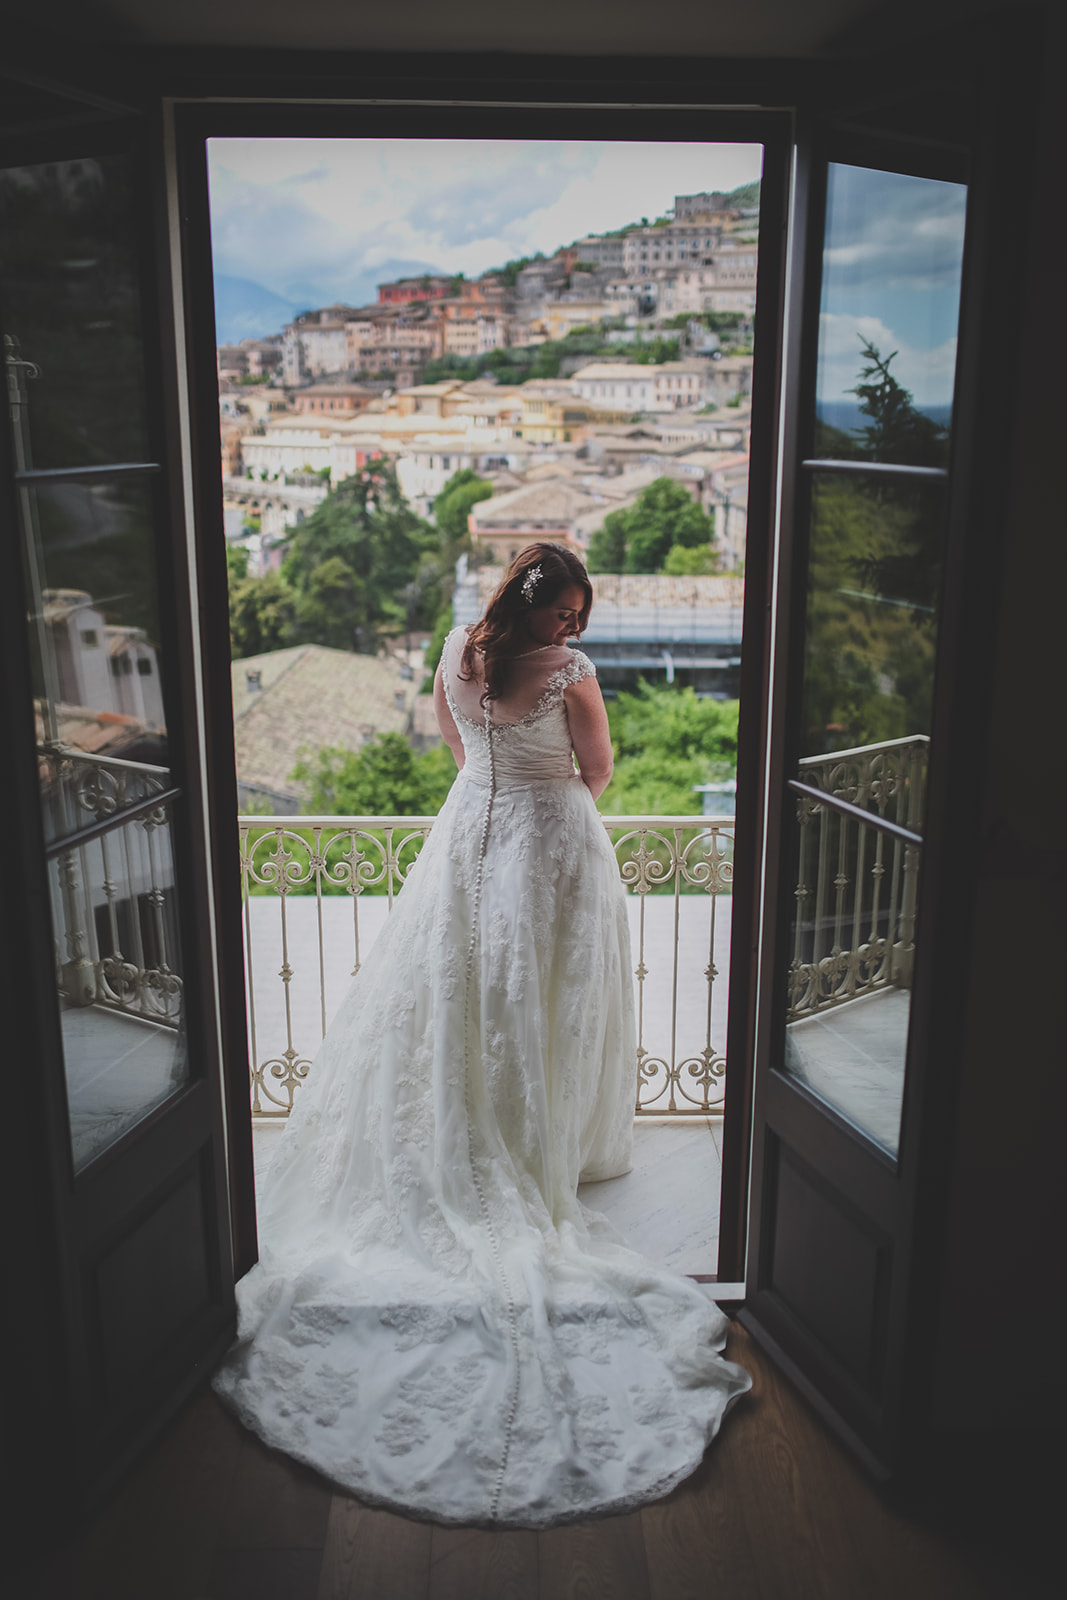 a bride stands with her back to the camera with views of the italian hills in the background. destination creative wedding photography italy. stop motion wedding films uk